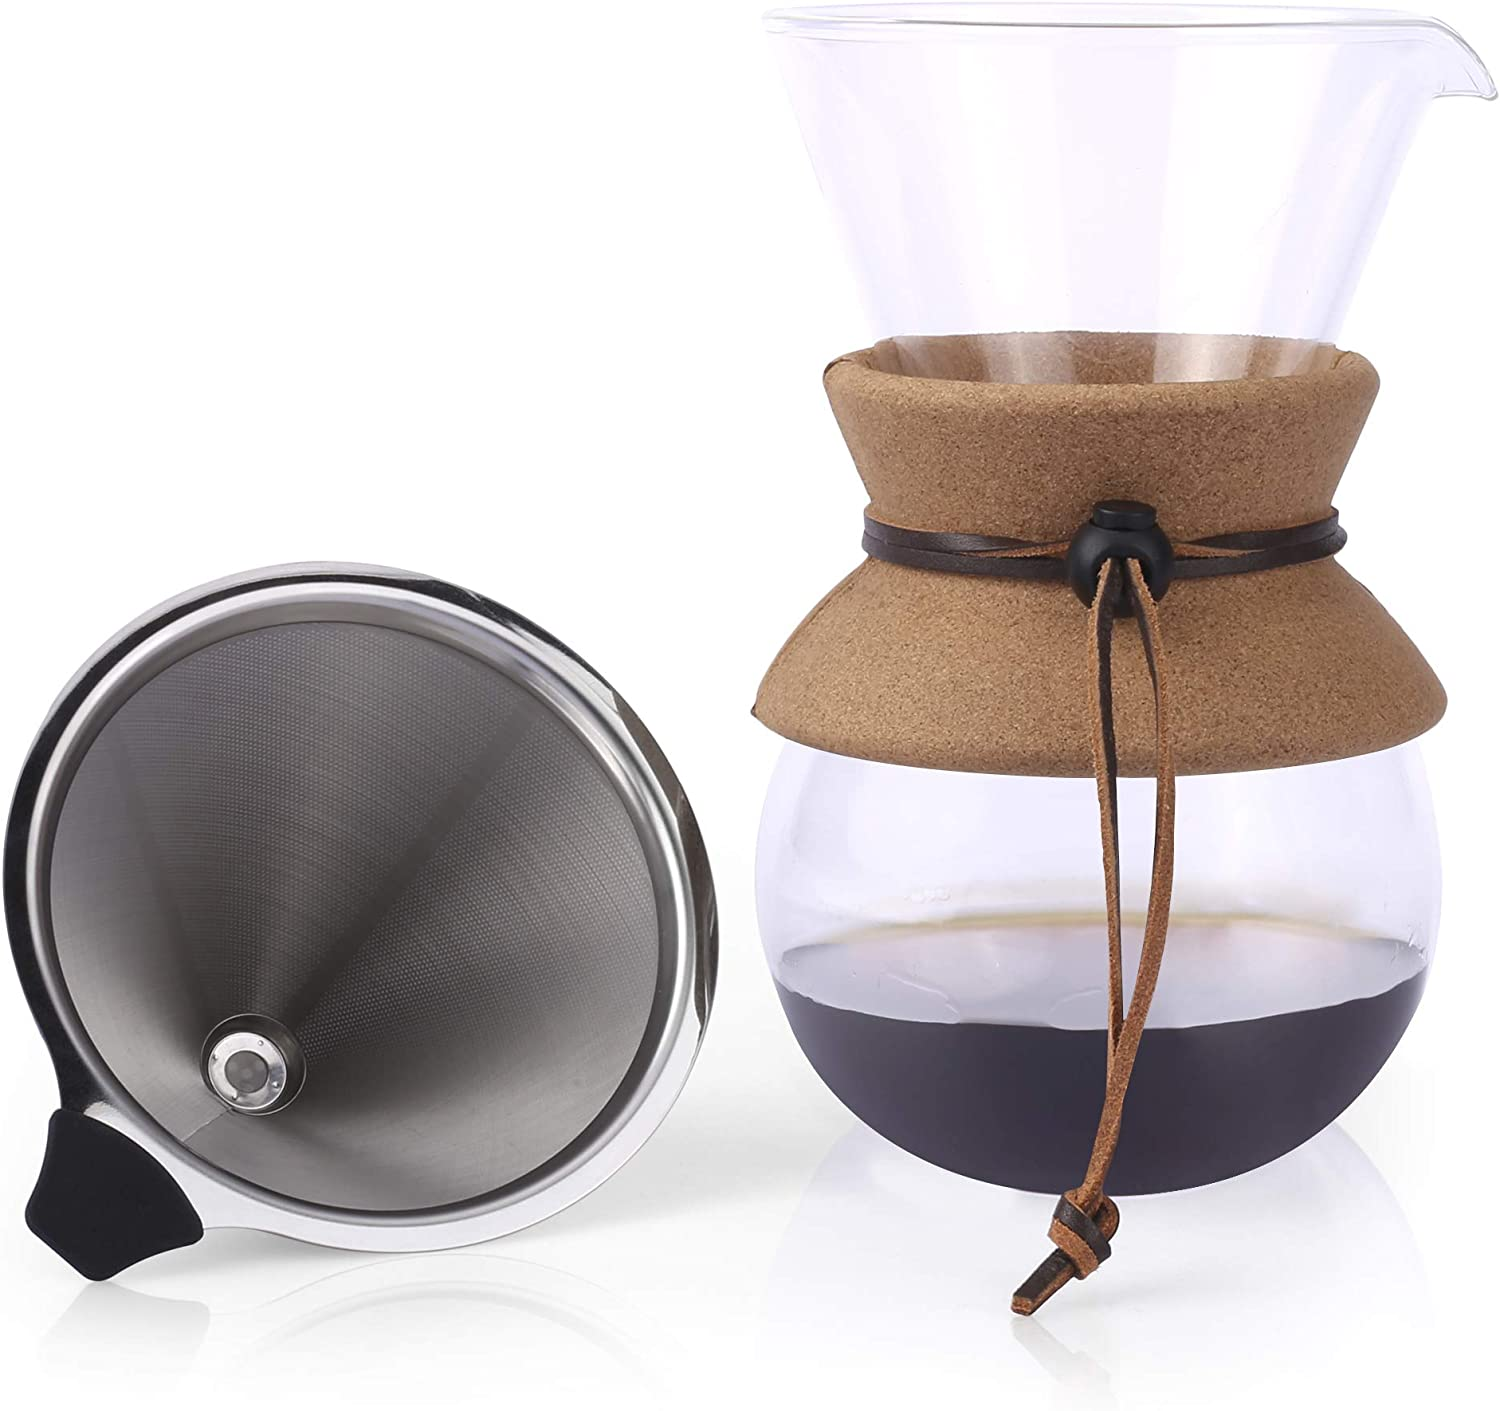 Apace Living Pour Over Coffee Maker – 2019 Edition – Elegant Coffee Dripper Brewer Pot w Glass Carafe Permanent Stainless Steel Filter 27 oz